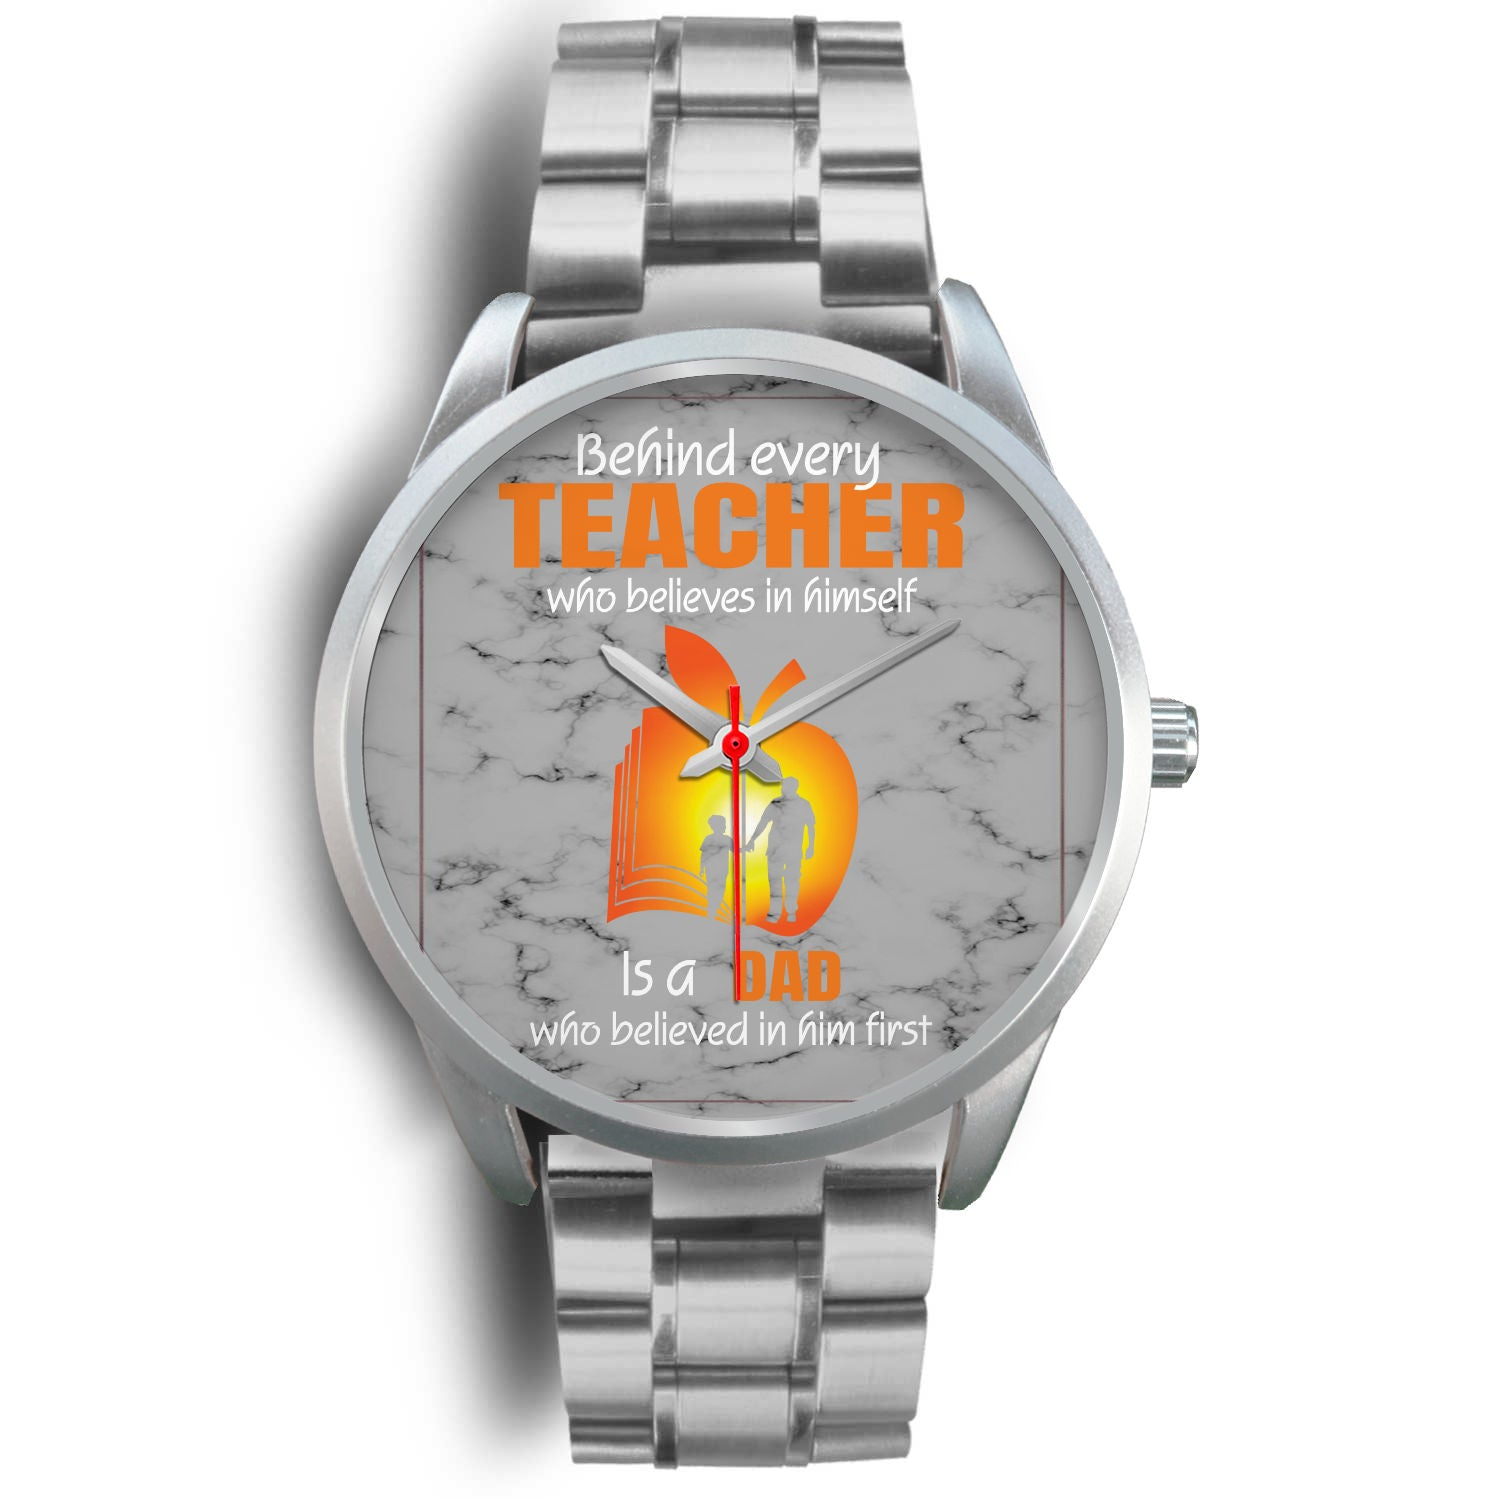 VIRA silver stainless steel watch for awesome teachers & dads